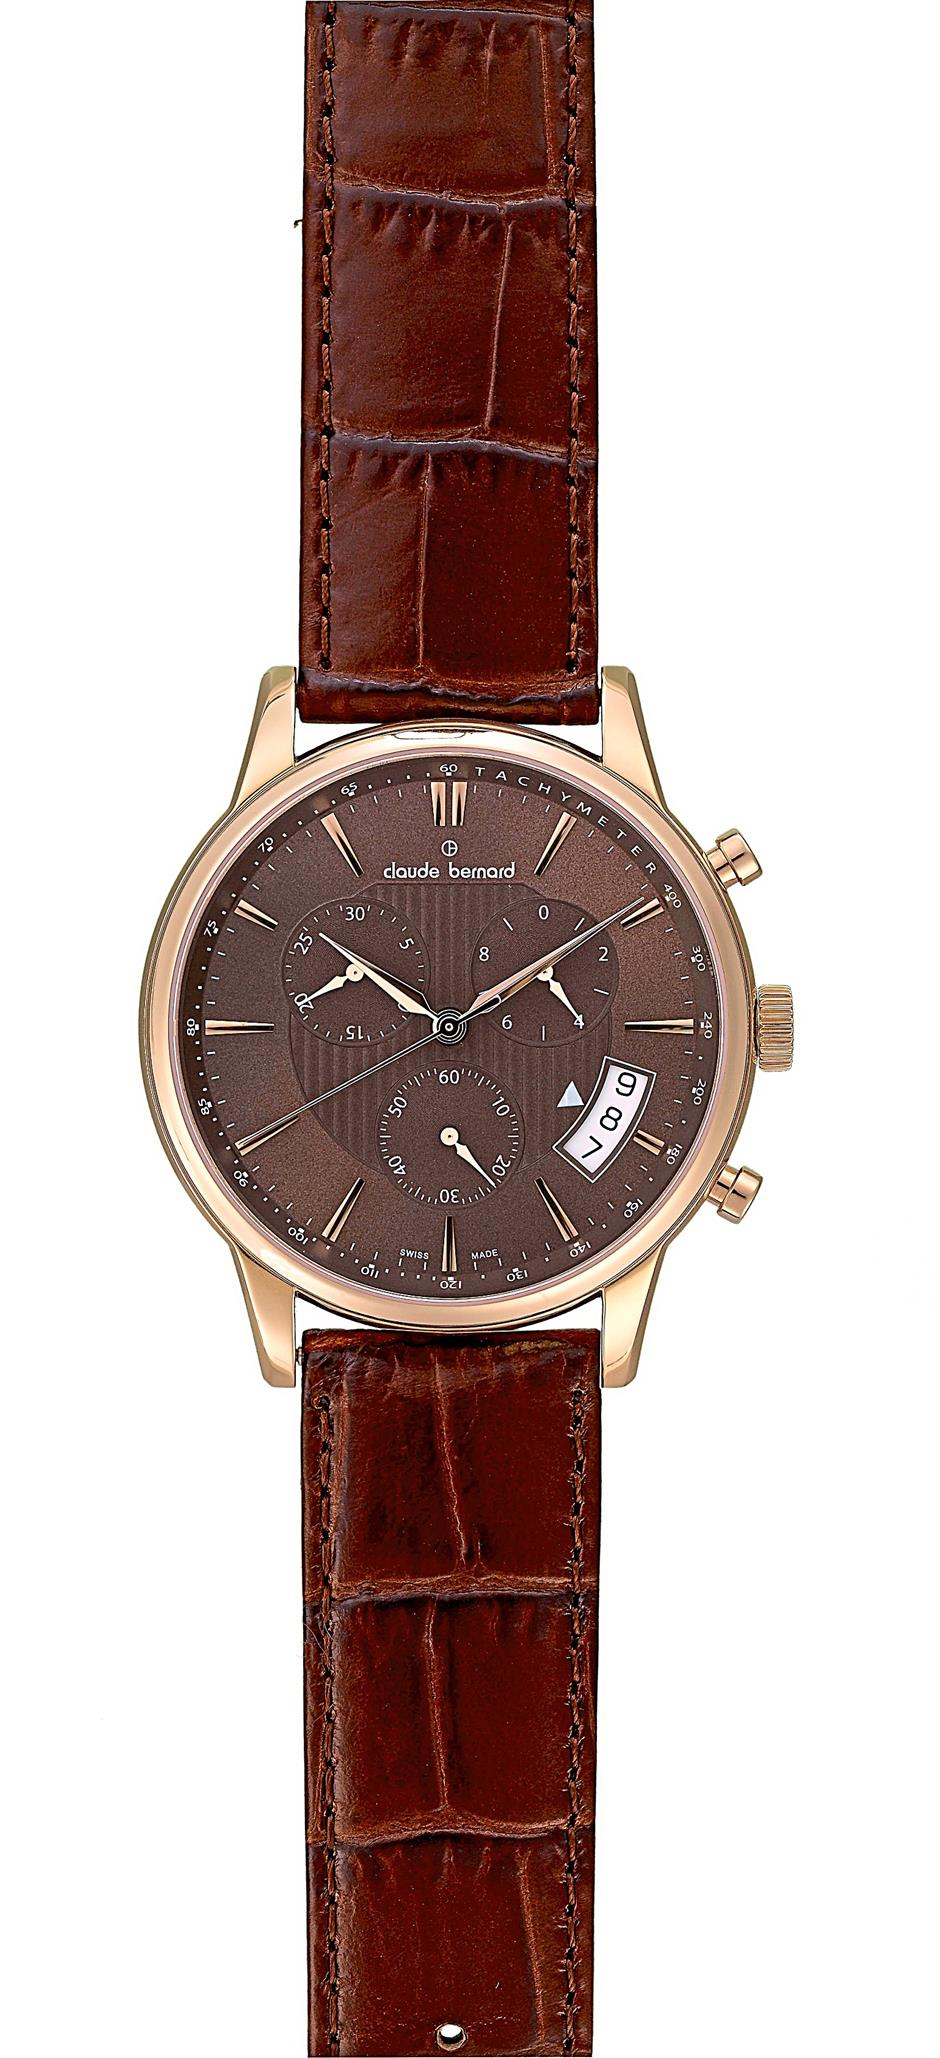 Cocoa is the hottest hue in the watch industry, with top Swiss marques including Claude Bernard, unveiling collections in shades of brown.